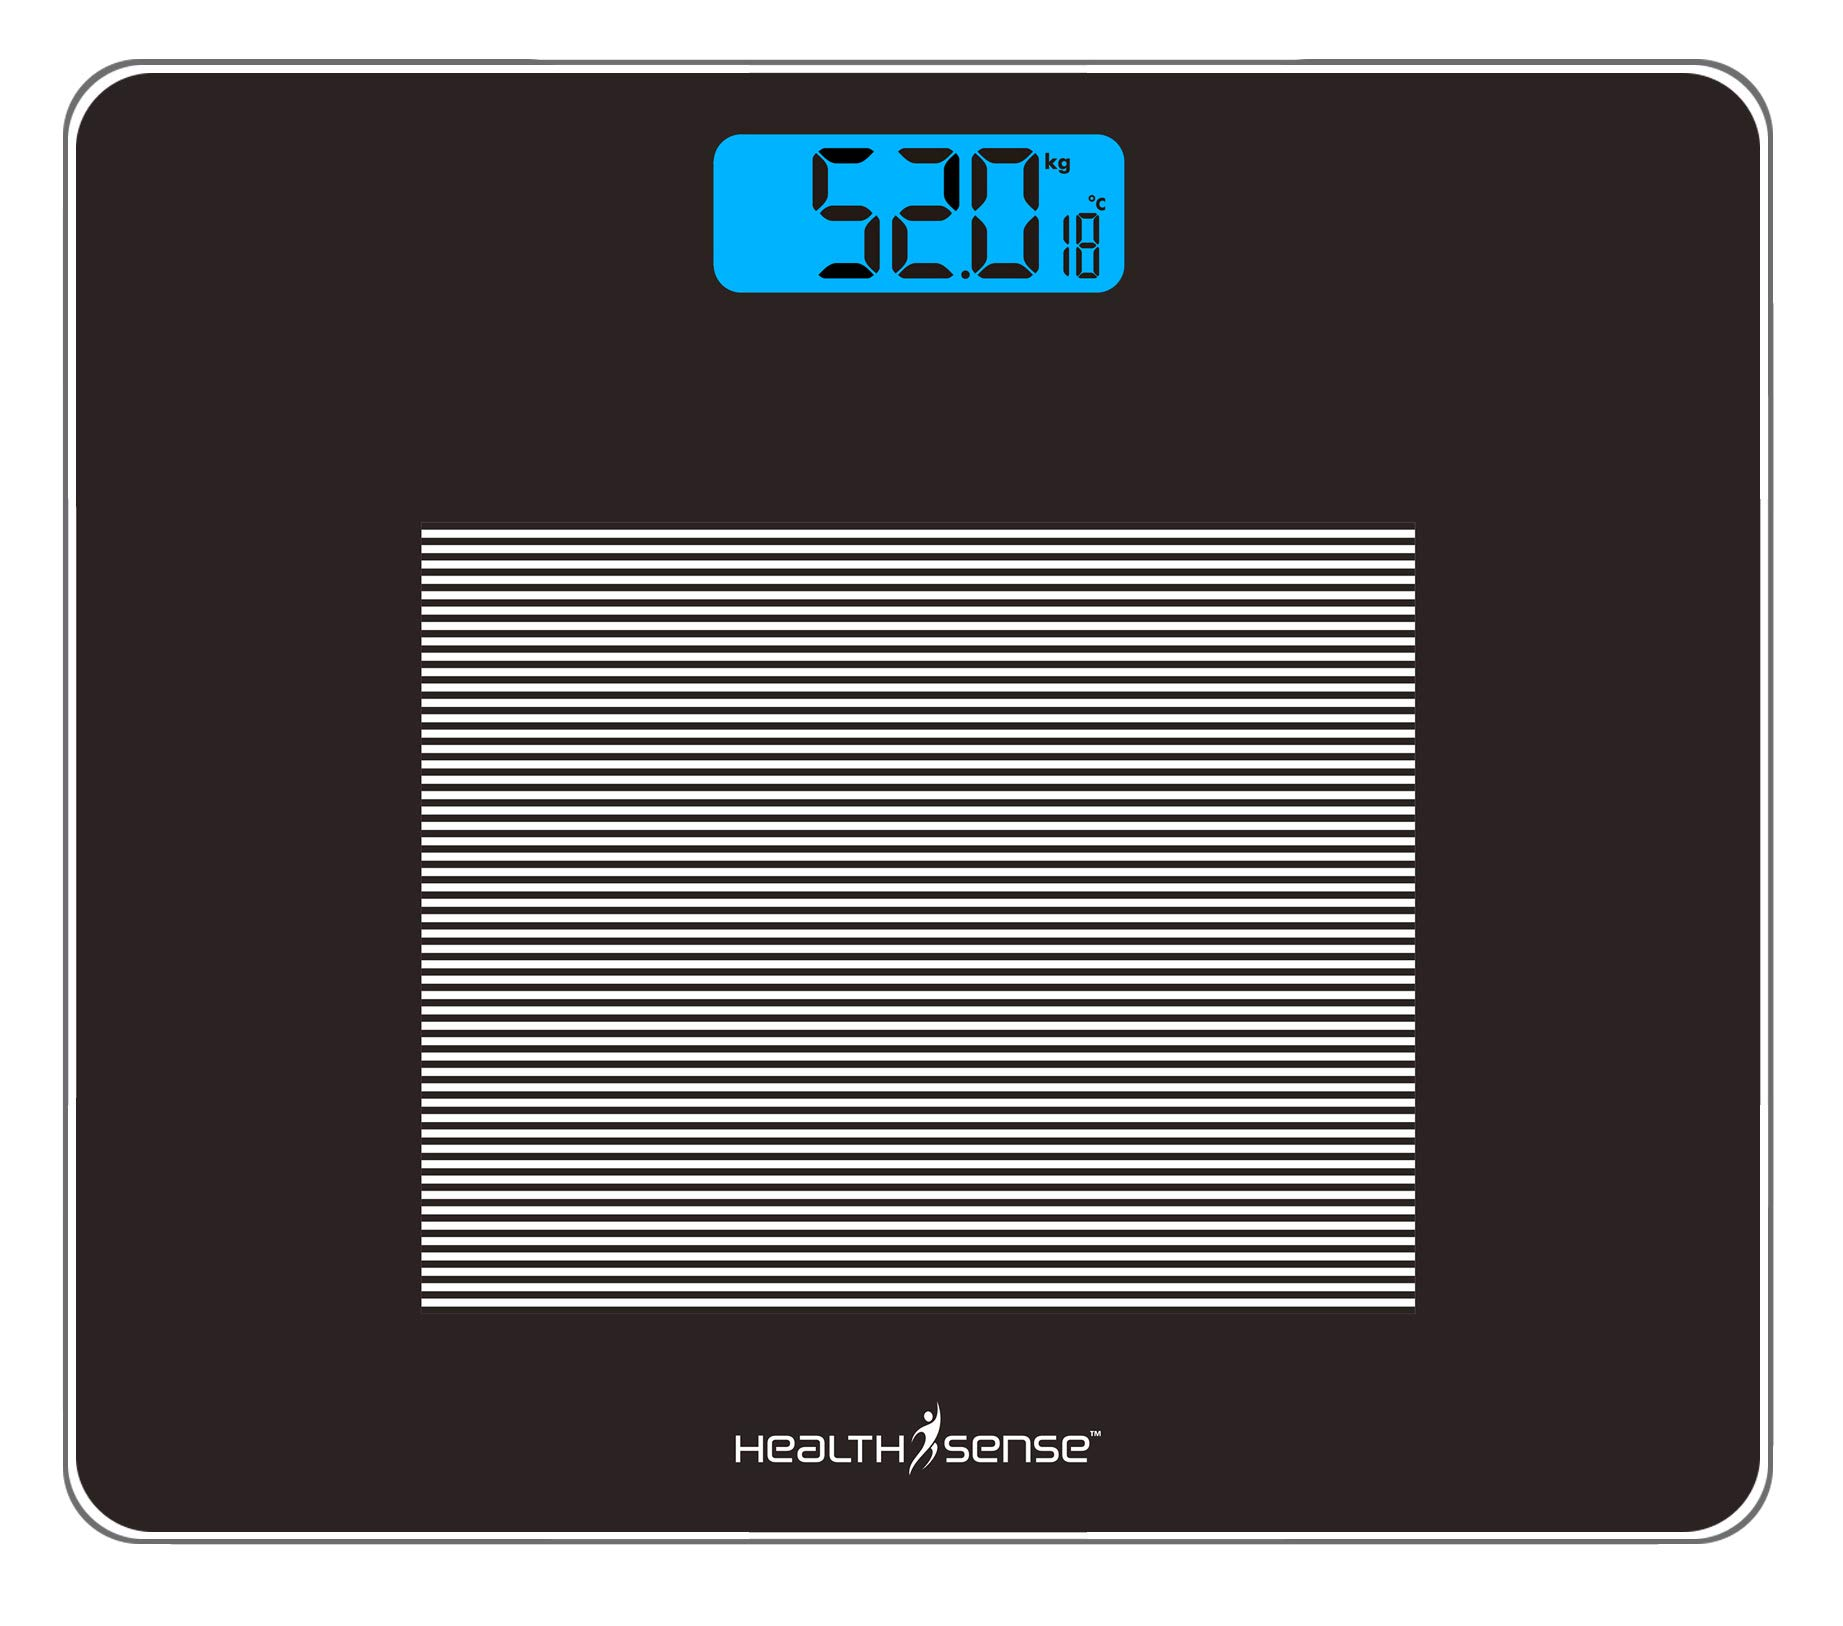 HealthSense Dura-Glass PS 115 Digital Personal Body Weighing Scale with Temperature and Step-On Technology (Batteries Included) product image